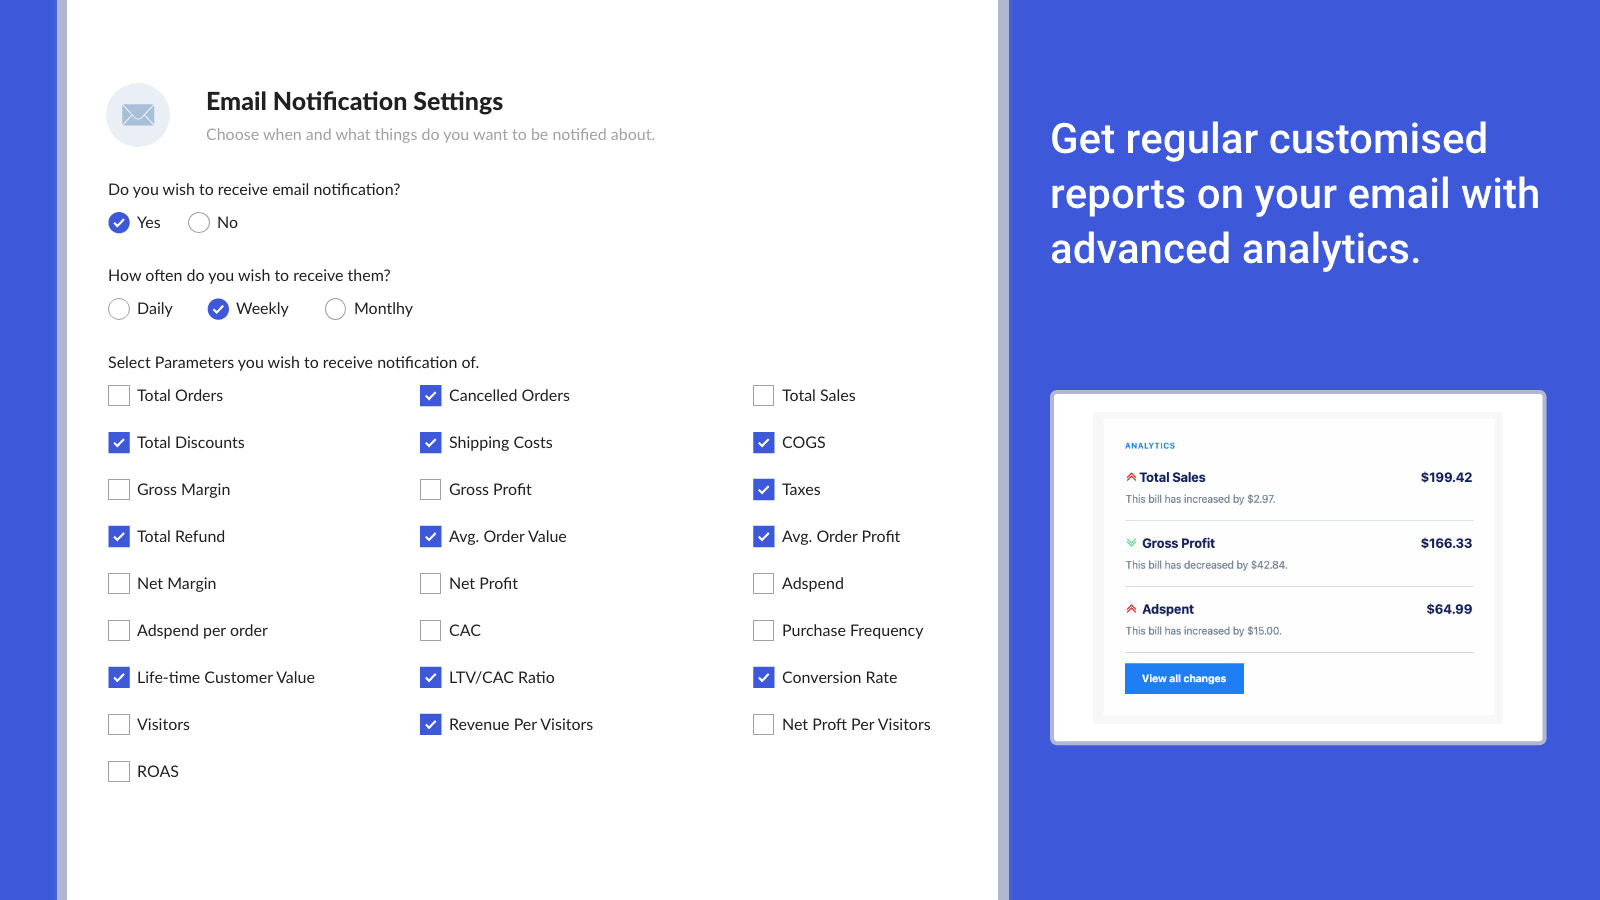 Regular customised reports on your email with advanced analytics